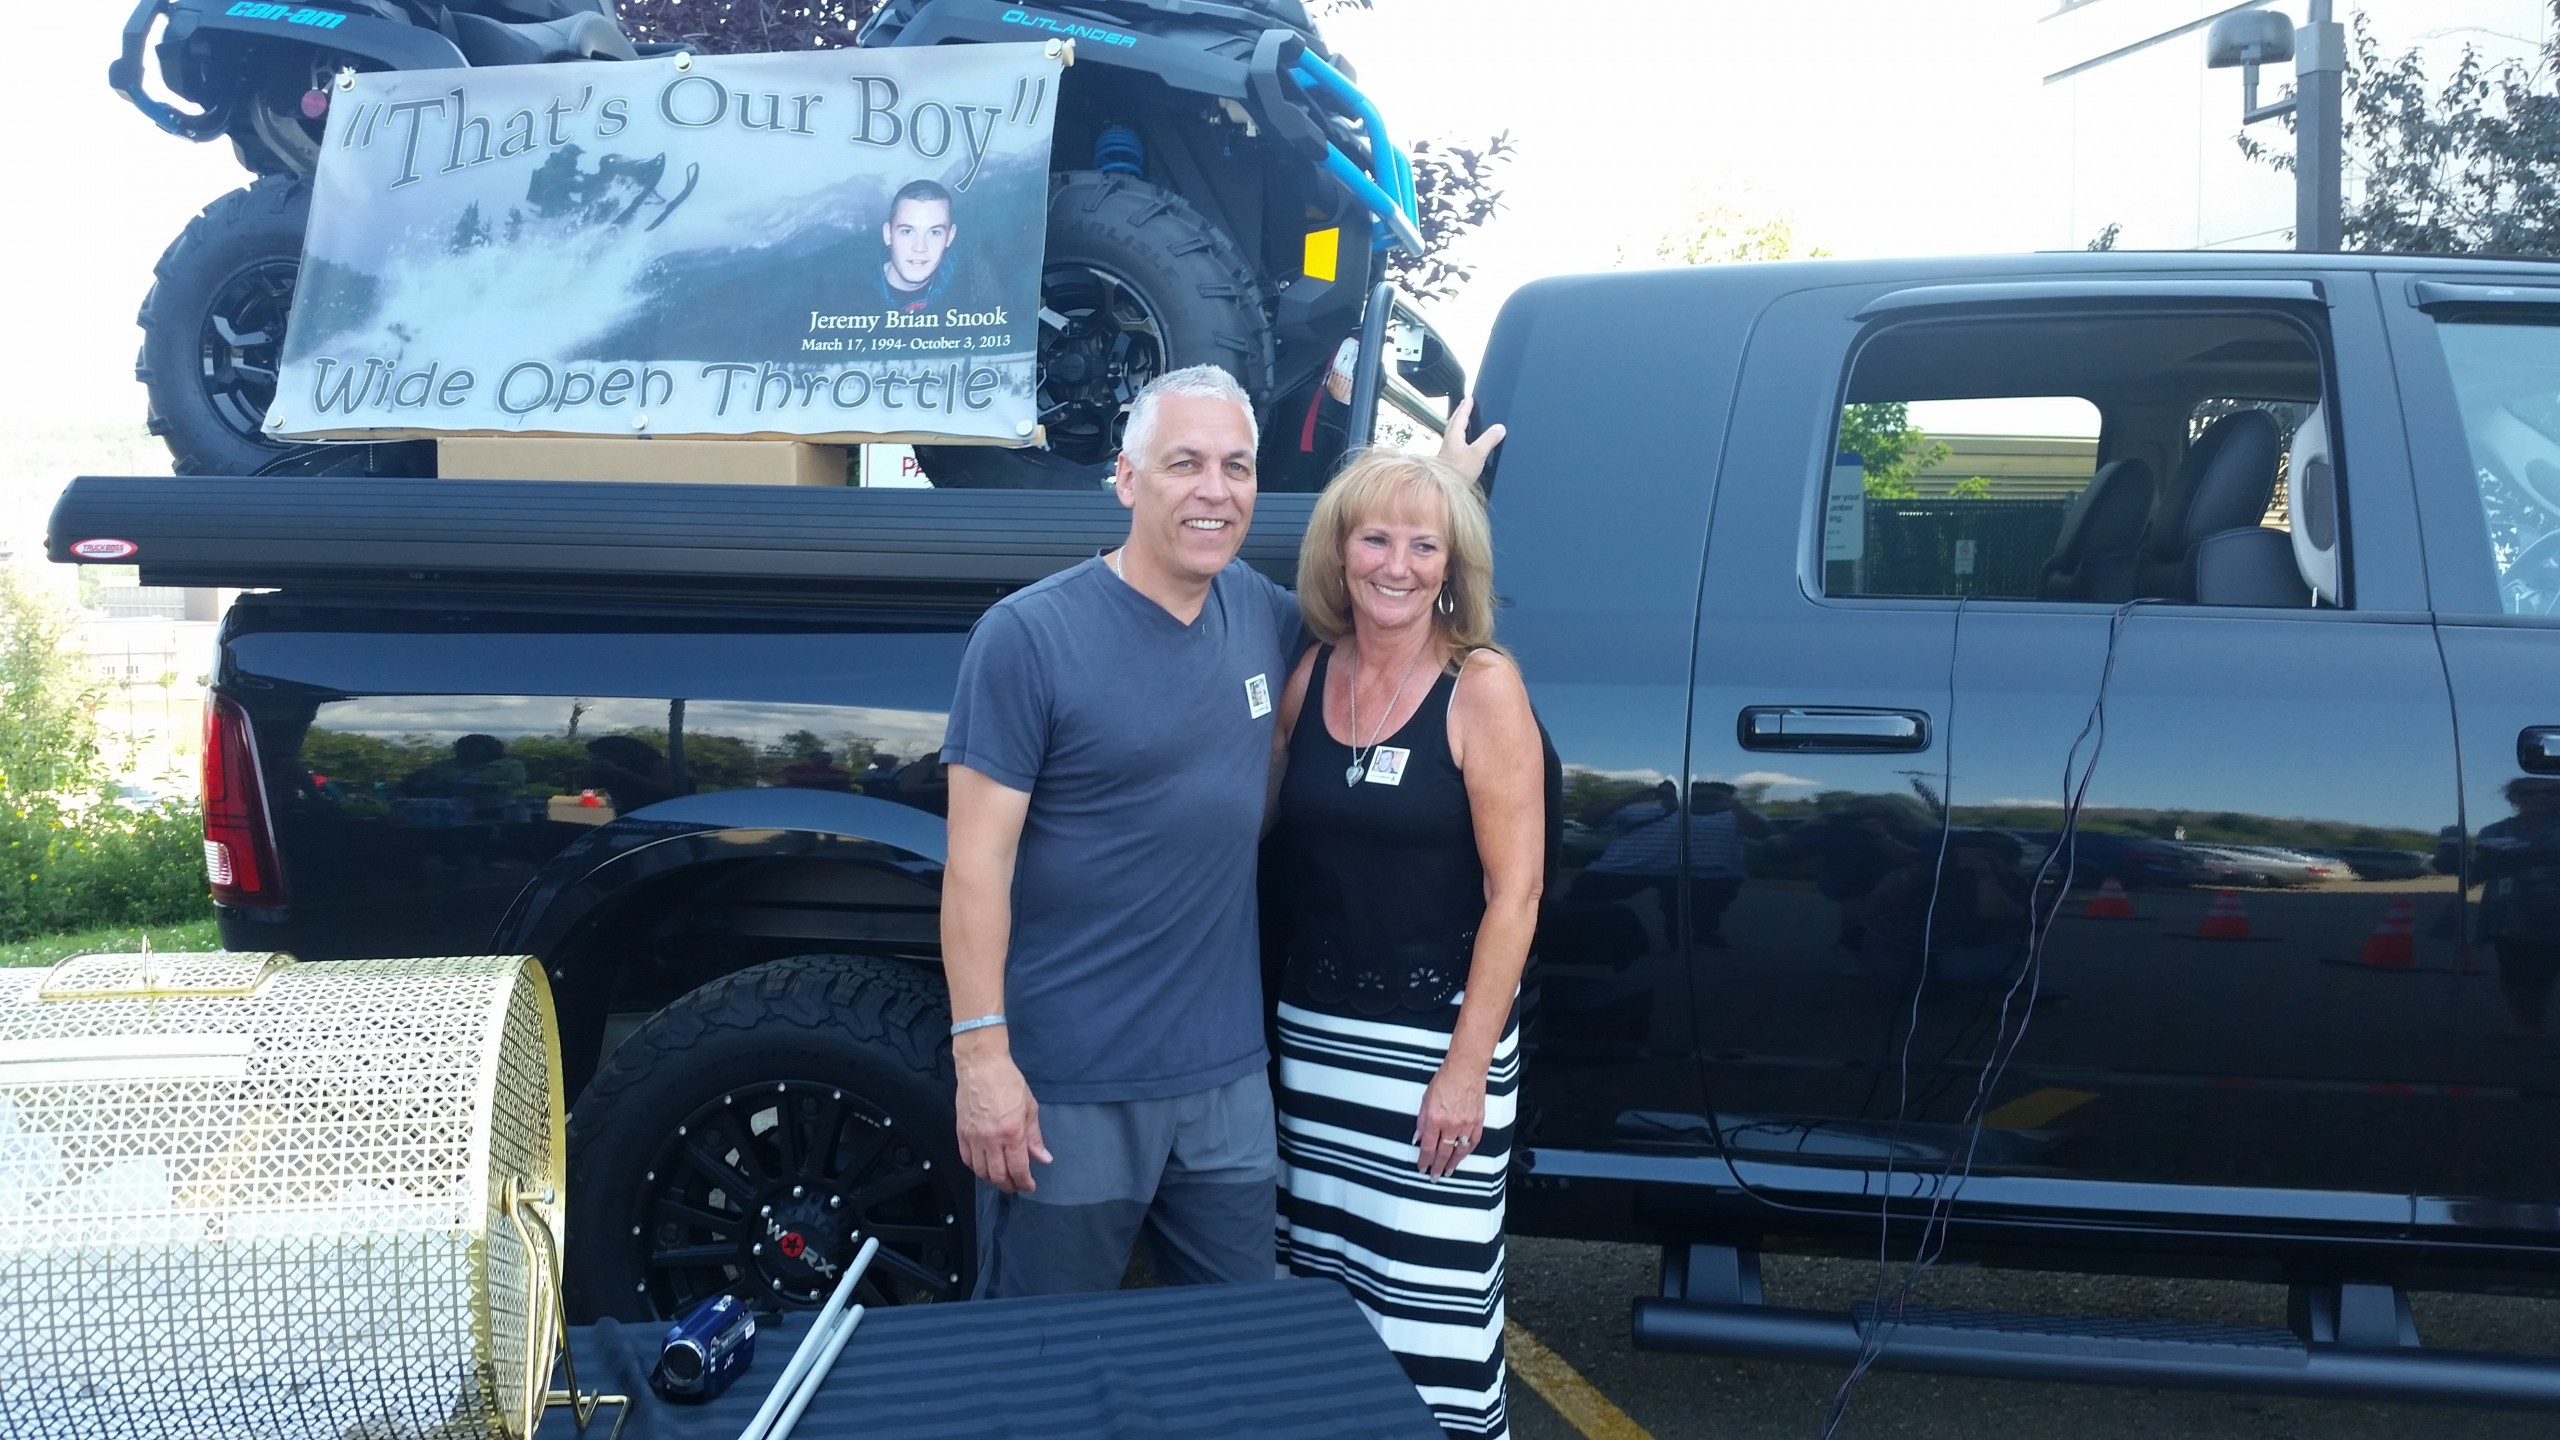 Over $106,000 dollars raised by Jeremy Snook raffle